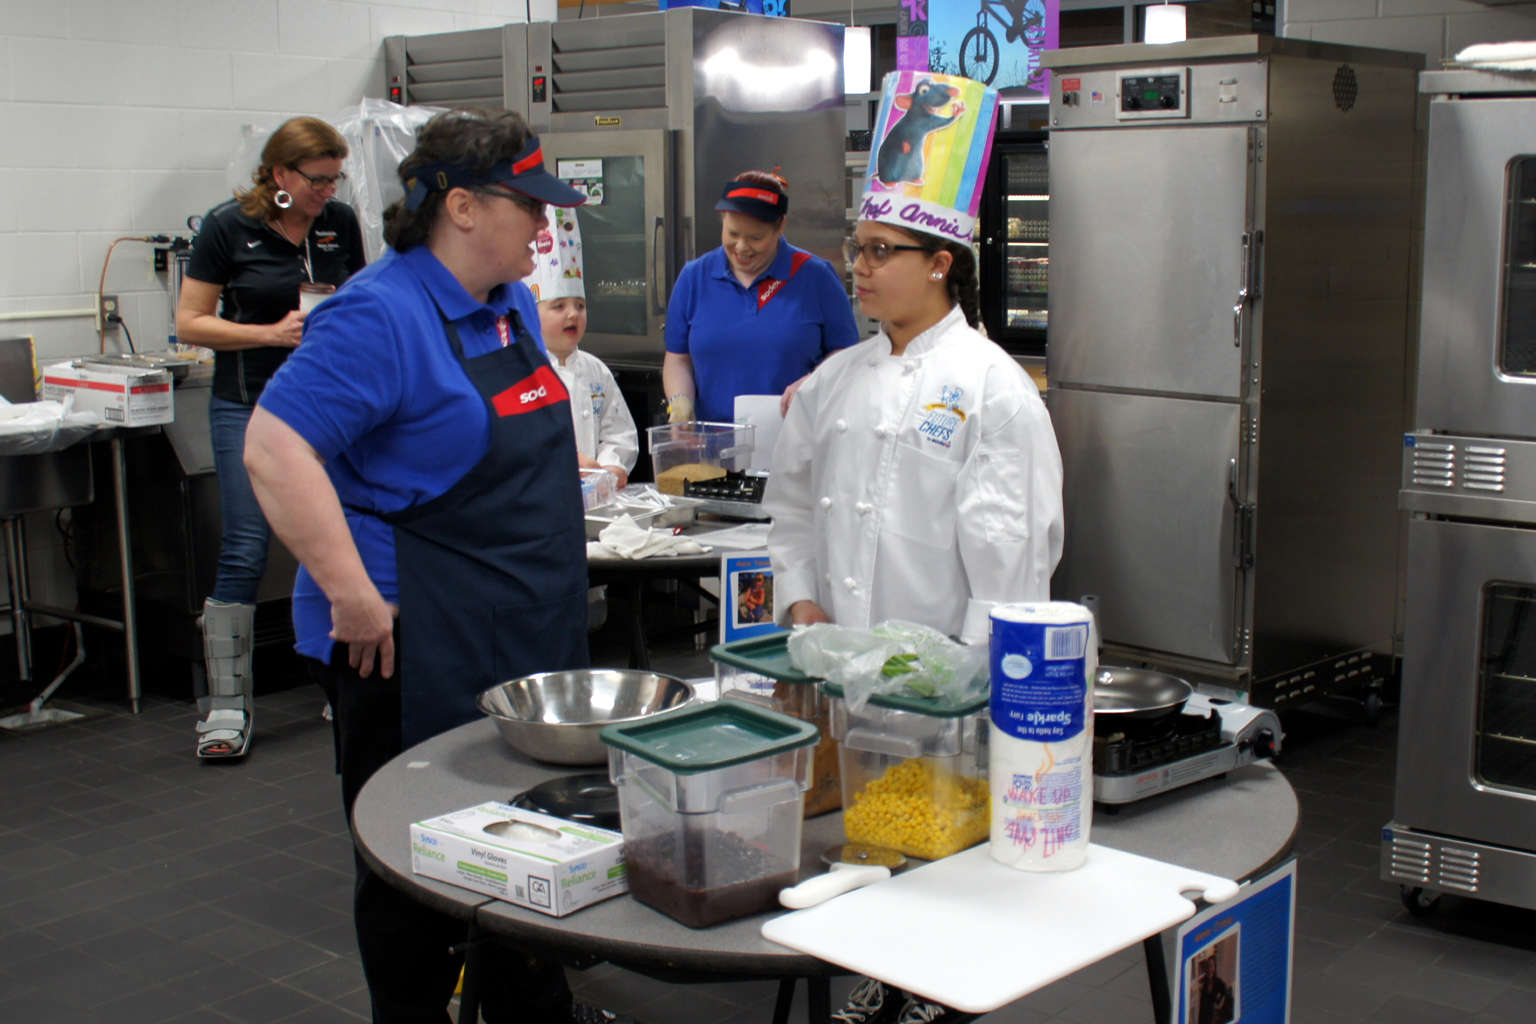 Cooking Competition student and staff helper review recipe and food items.